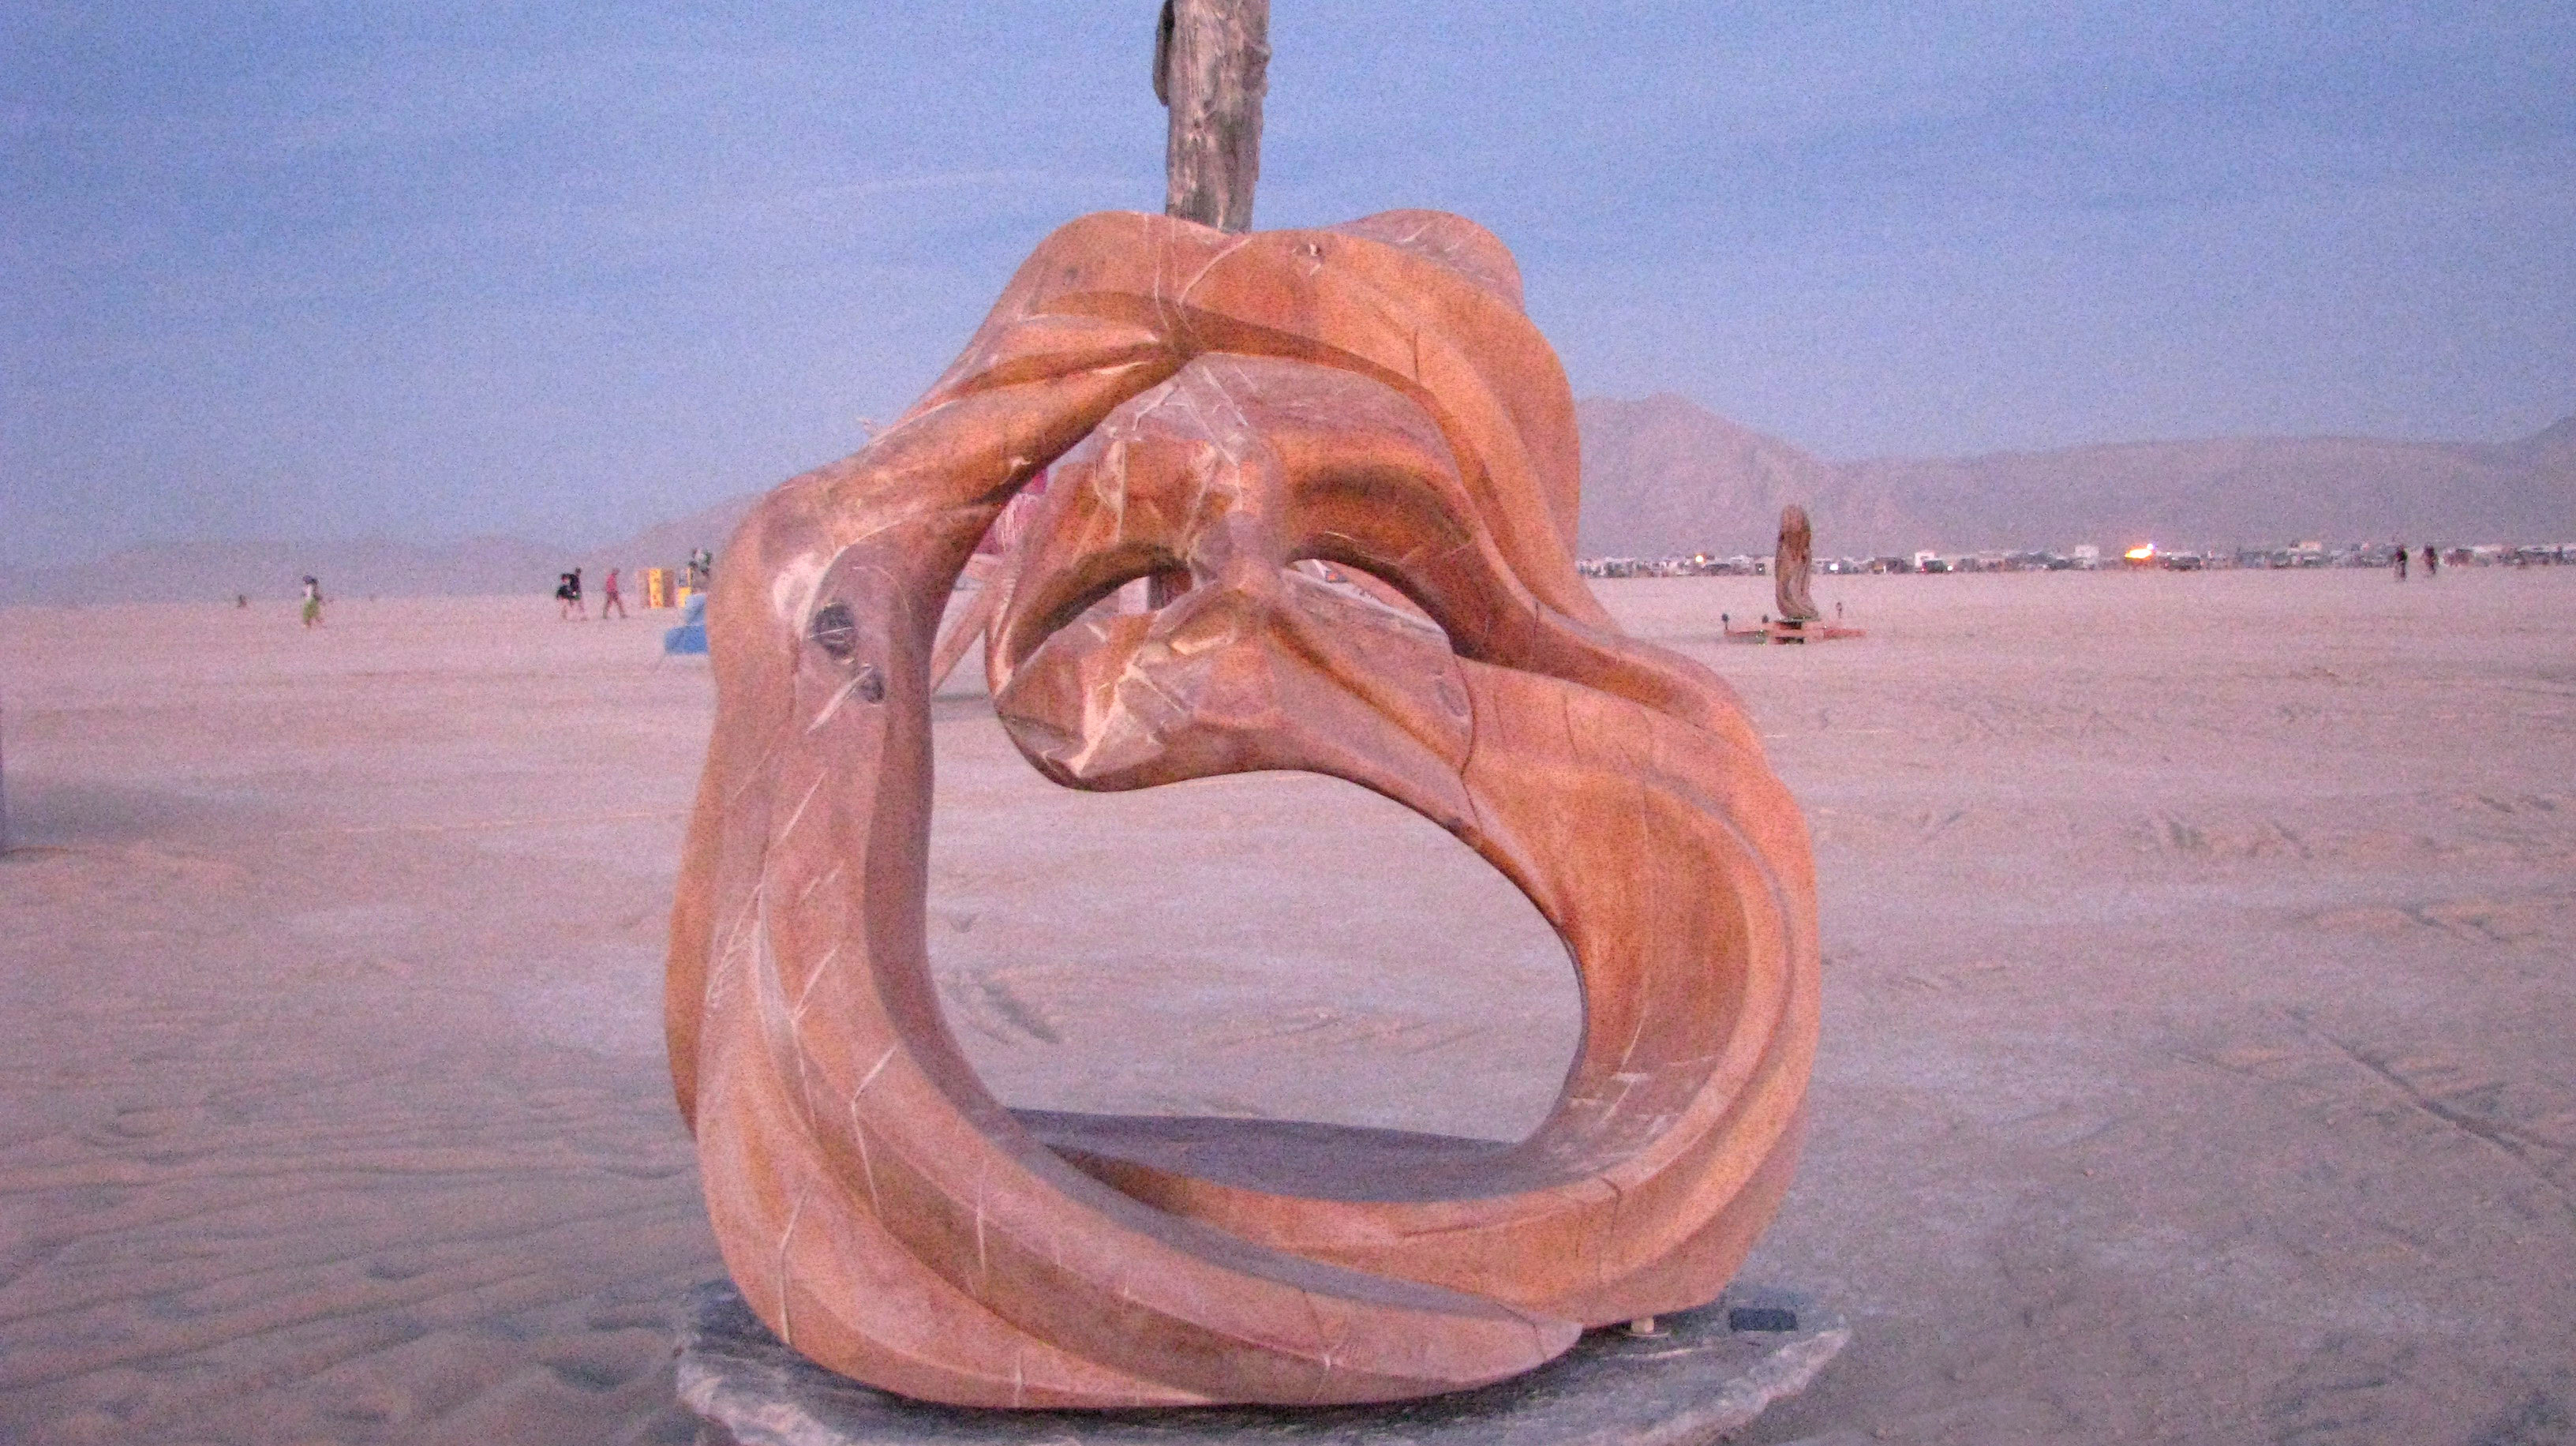 Burning Man '09